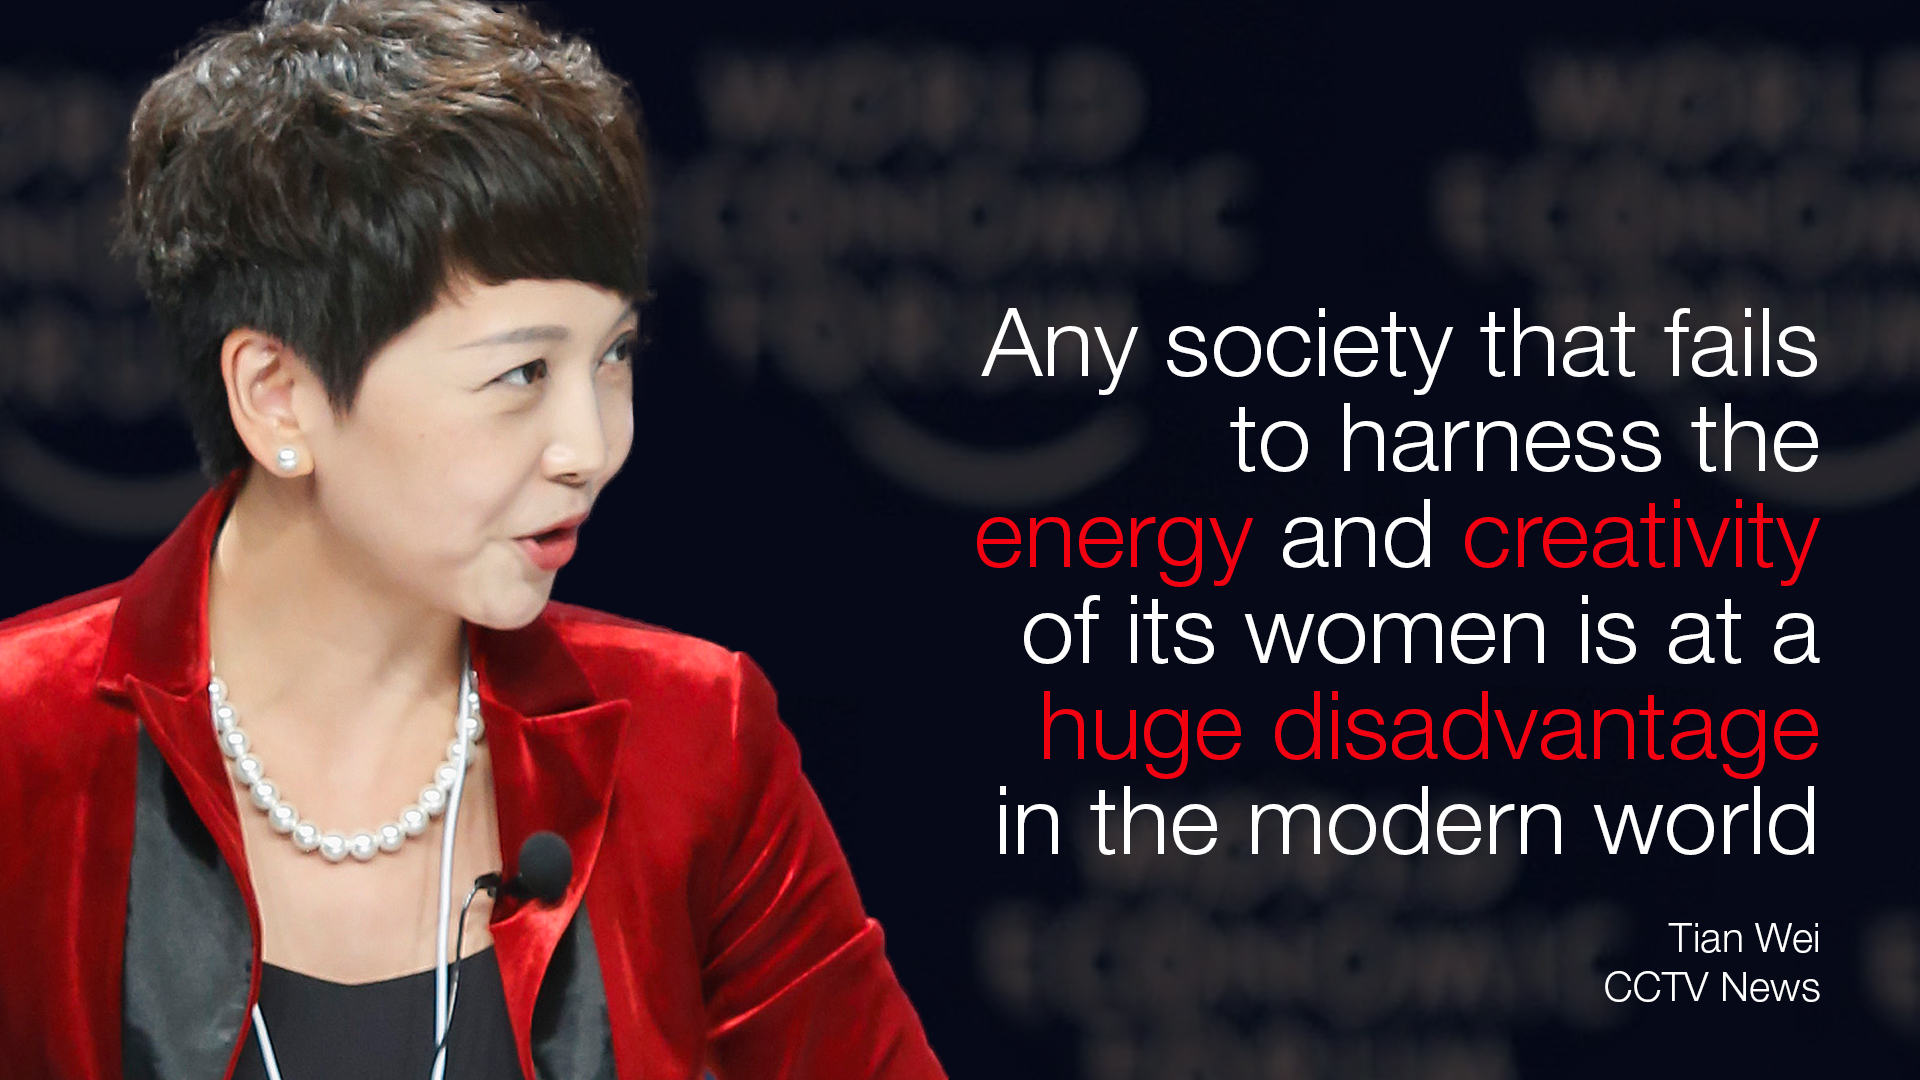 10 Quotes From Leaders On Gender Equality